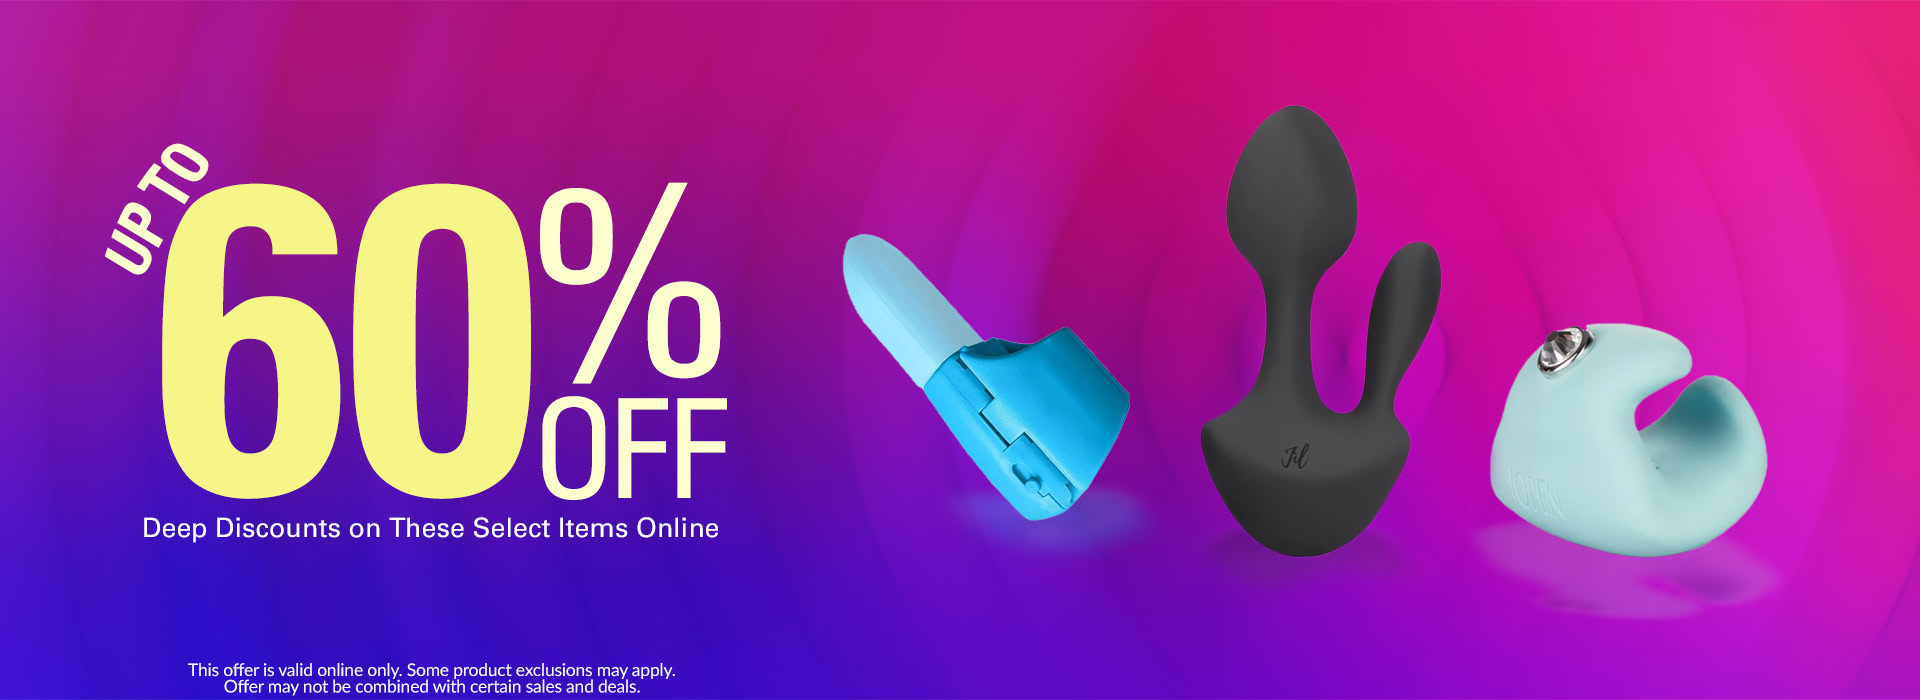 Up to 60% Off Select Products Online